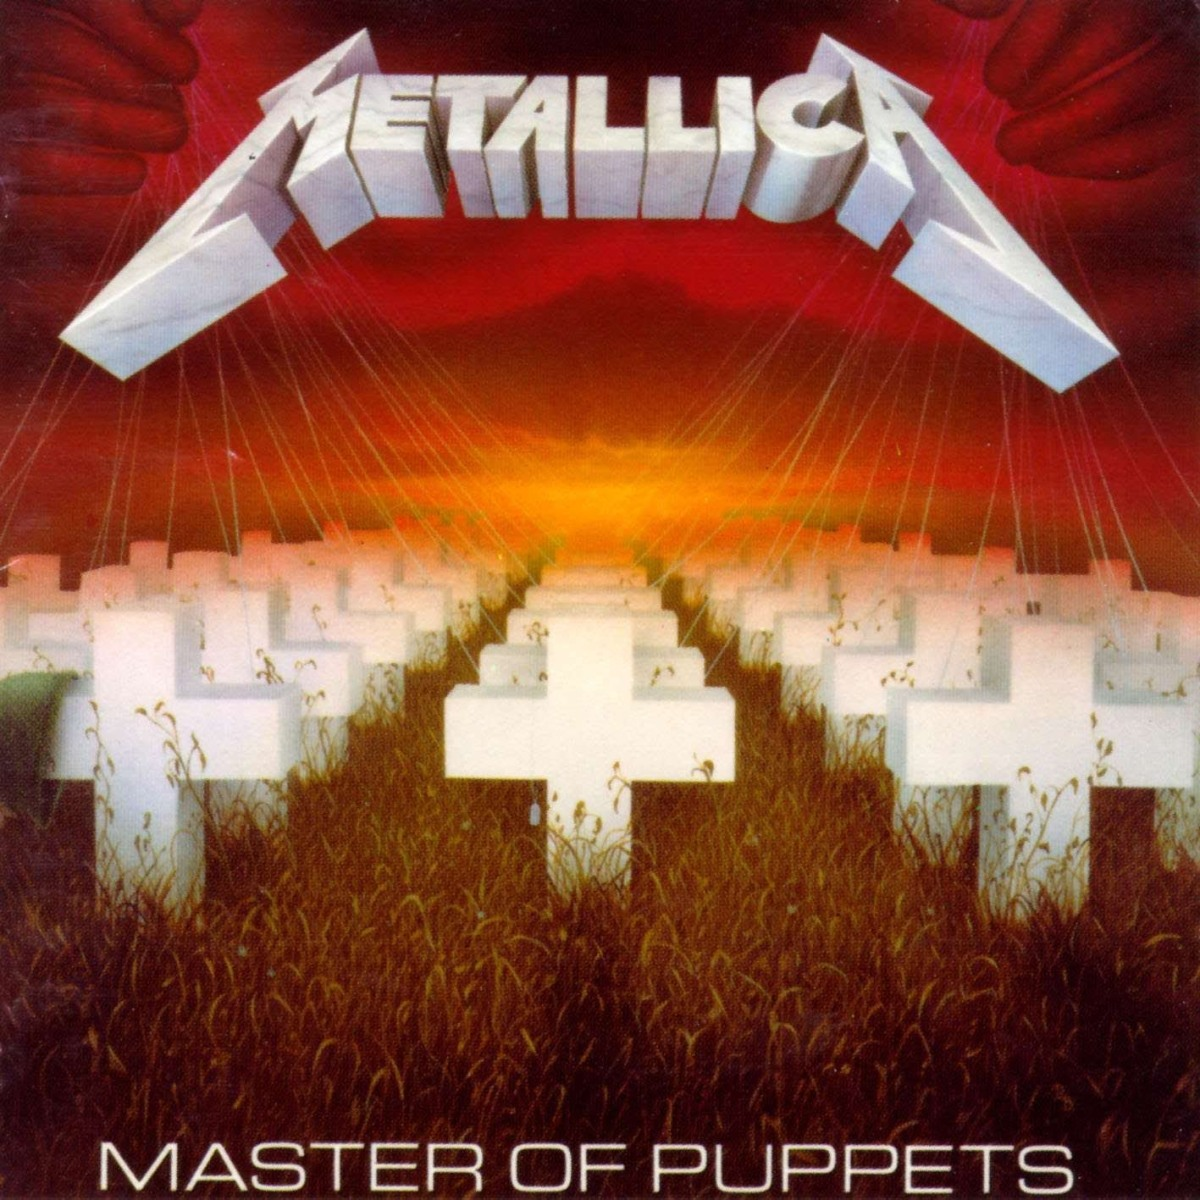 On Loudwire: Cover Stories - Metallica's 'Master of Puppets'